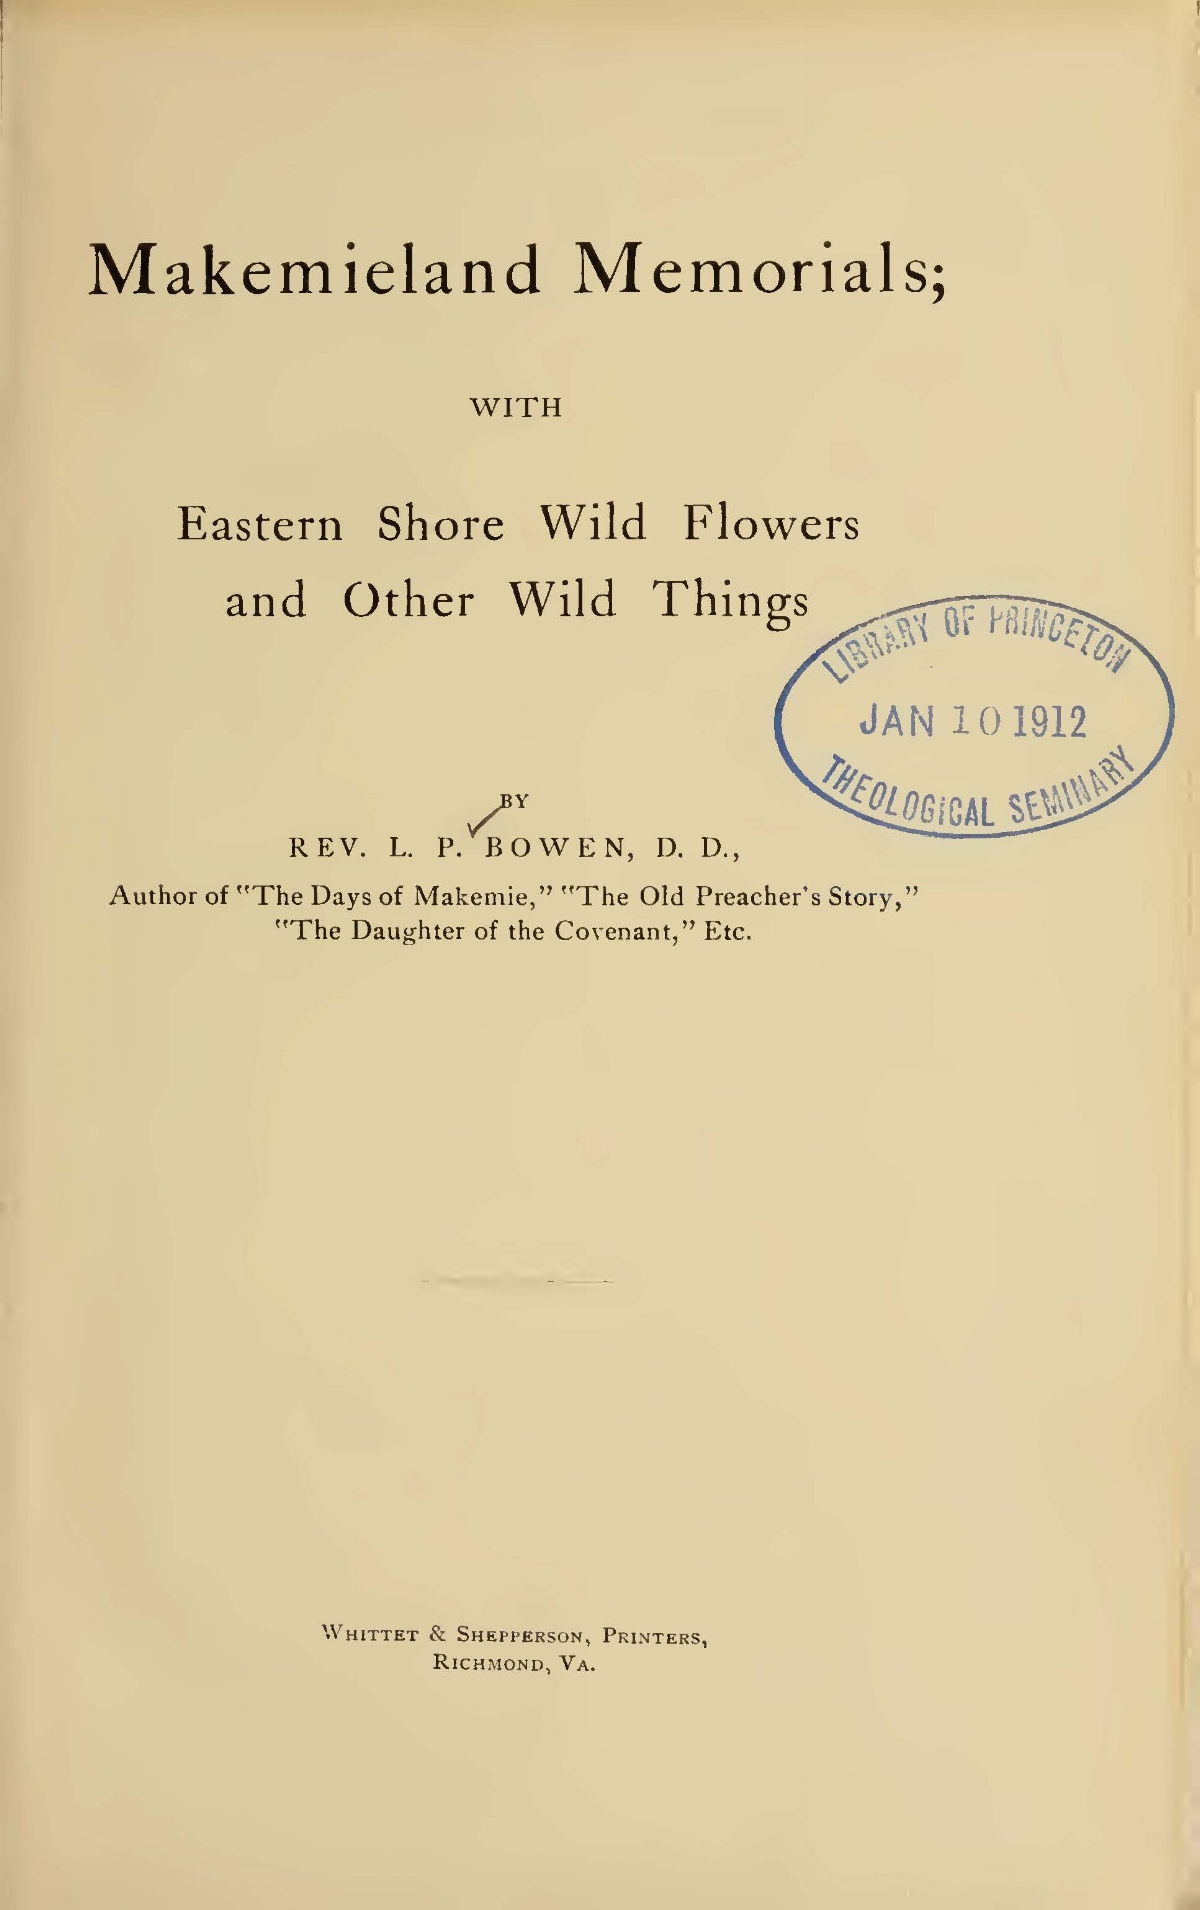 Bowen, Littleton Purnell, Makemieland Memorials With Eastern Shore Wild Flowers and Other Wild Things Title Page.jpg